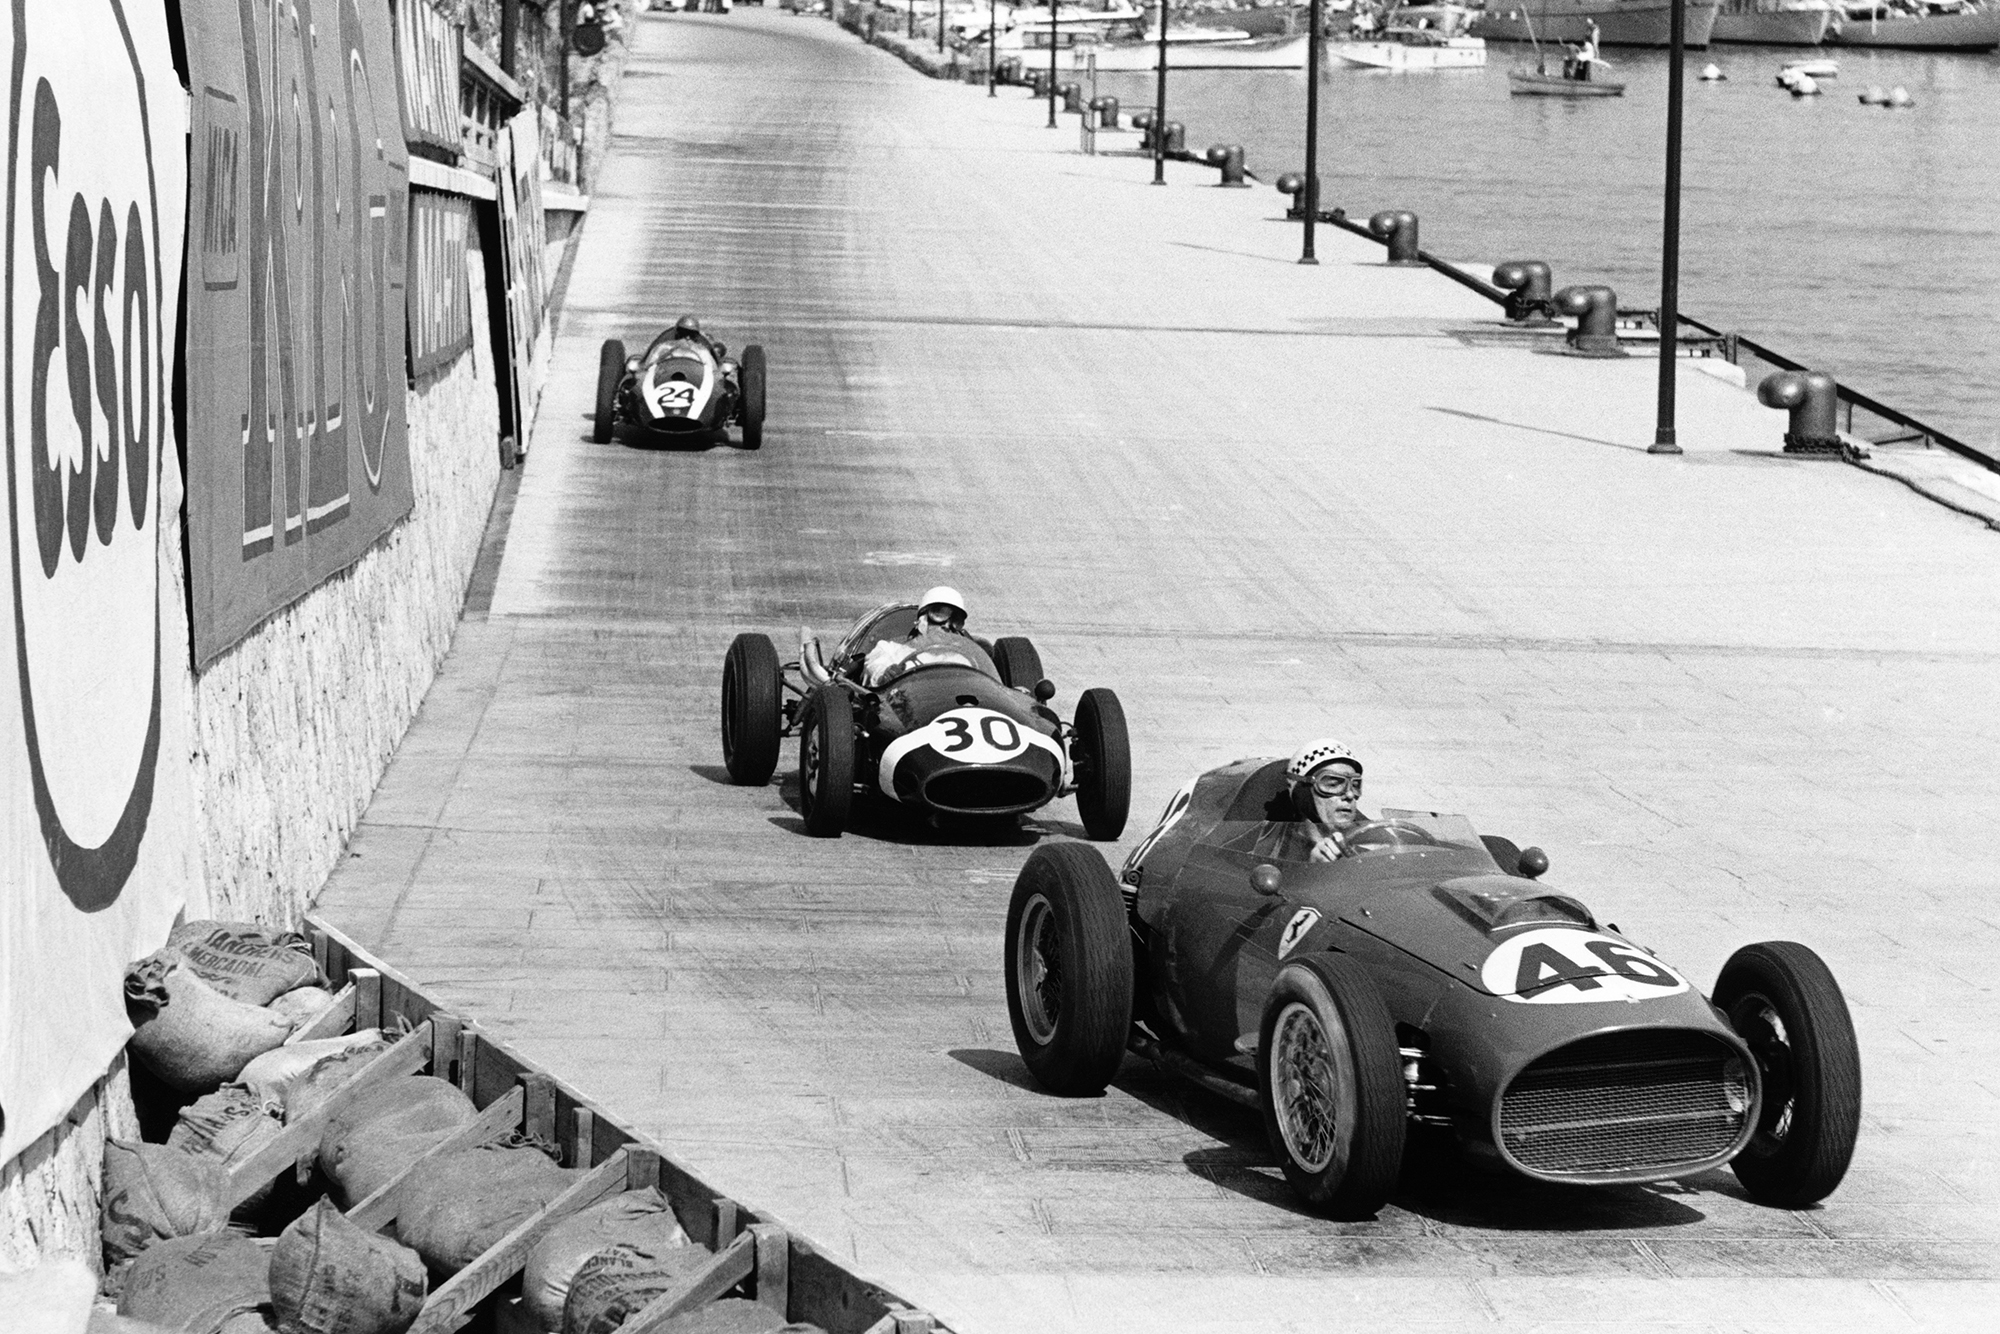 Jean Behra in his Ferrari Dino 246 leads Stirling Moss in a Cooper T51-Climax and Jack Brabham also in aCooper T51-Climax.